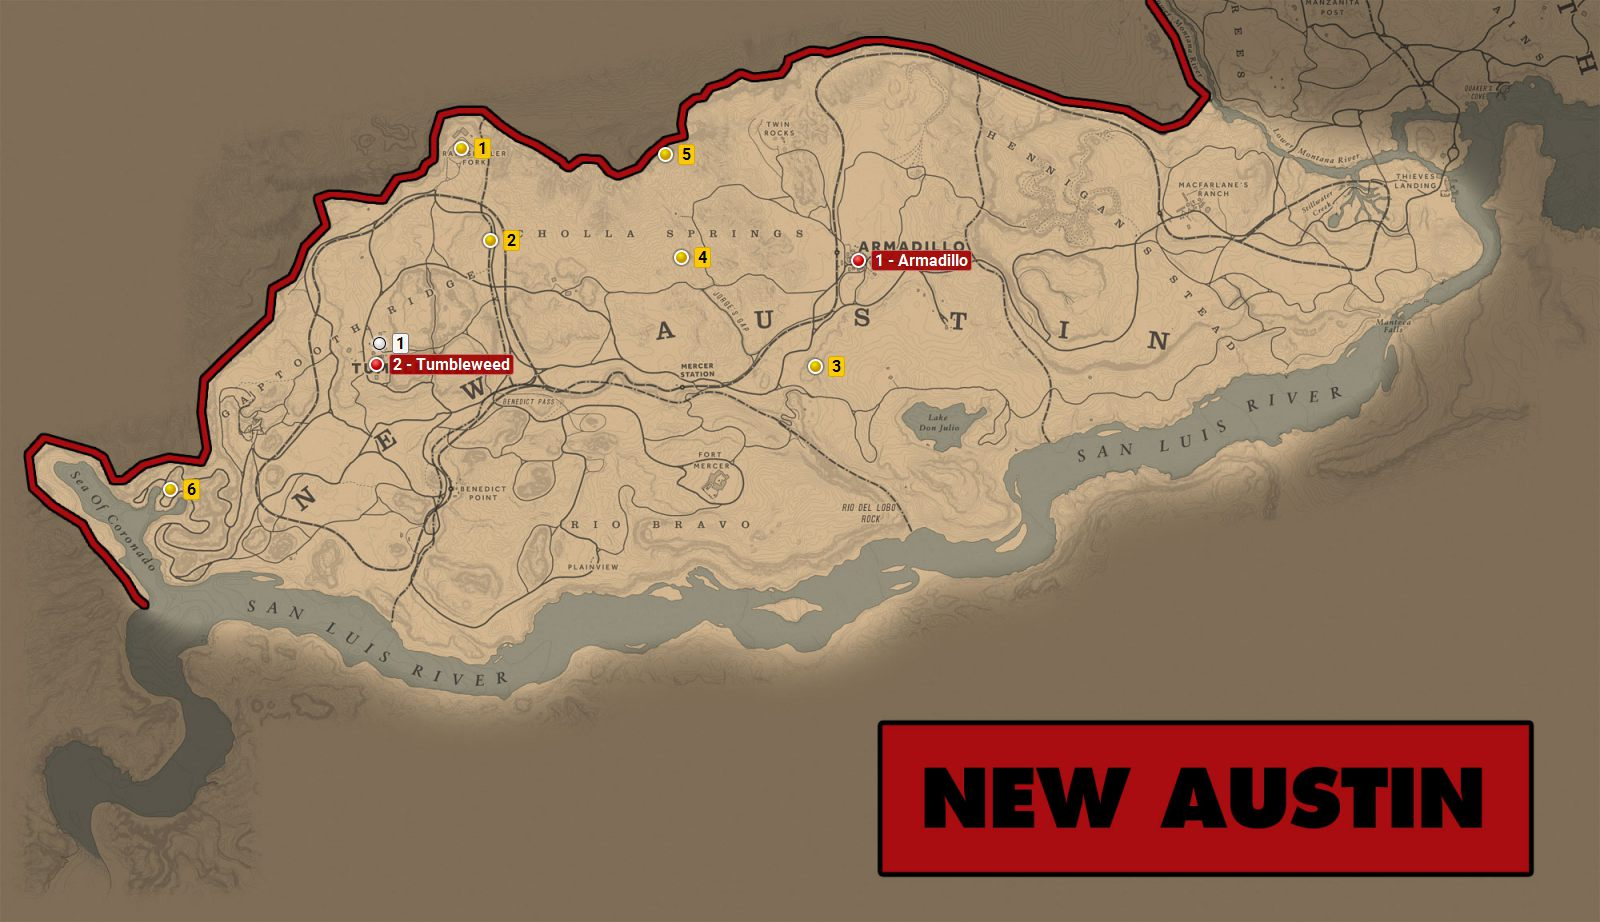 New Austin - Red Dead Redemption 2 World Atlas Map - Red Dead ...